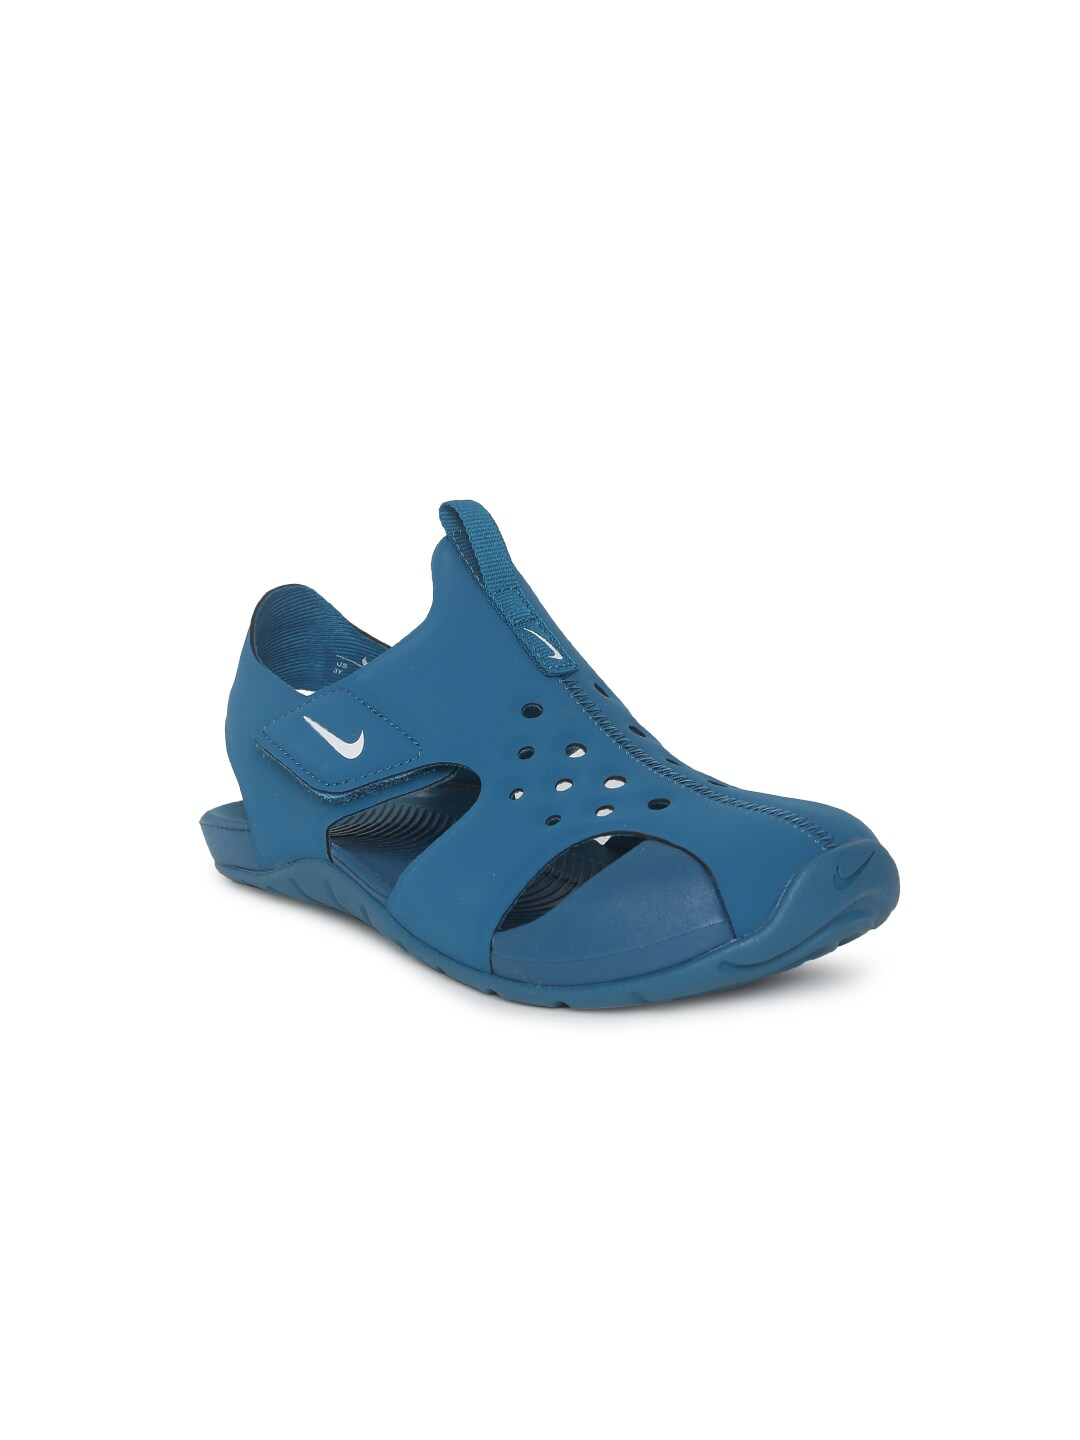 f44668e1f Nike Sport Sandals - Buy Nike Sport Sandals online in India